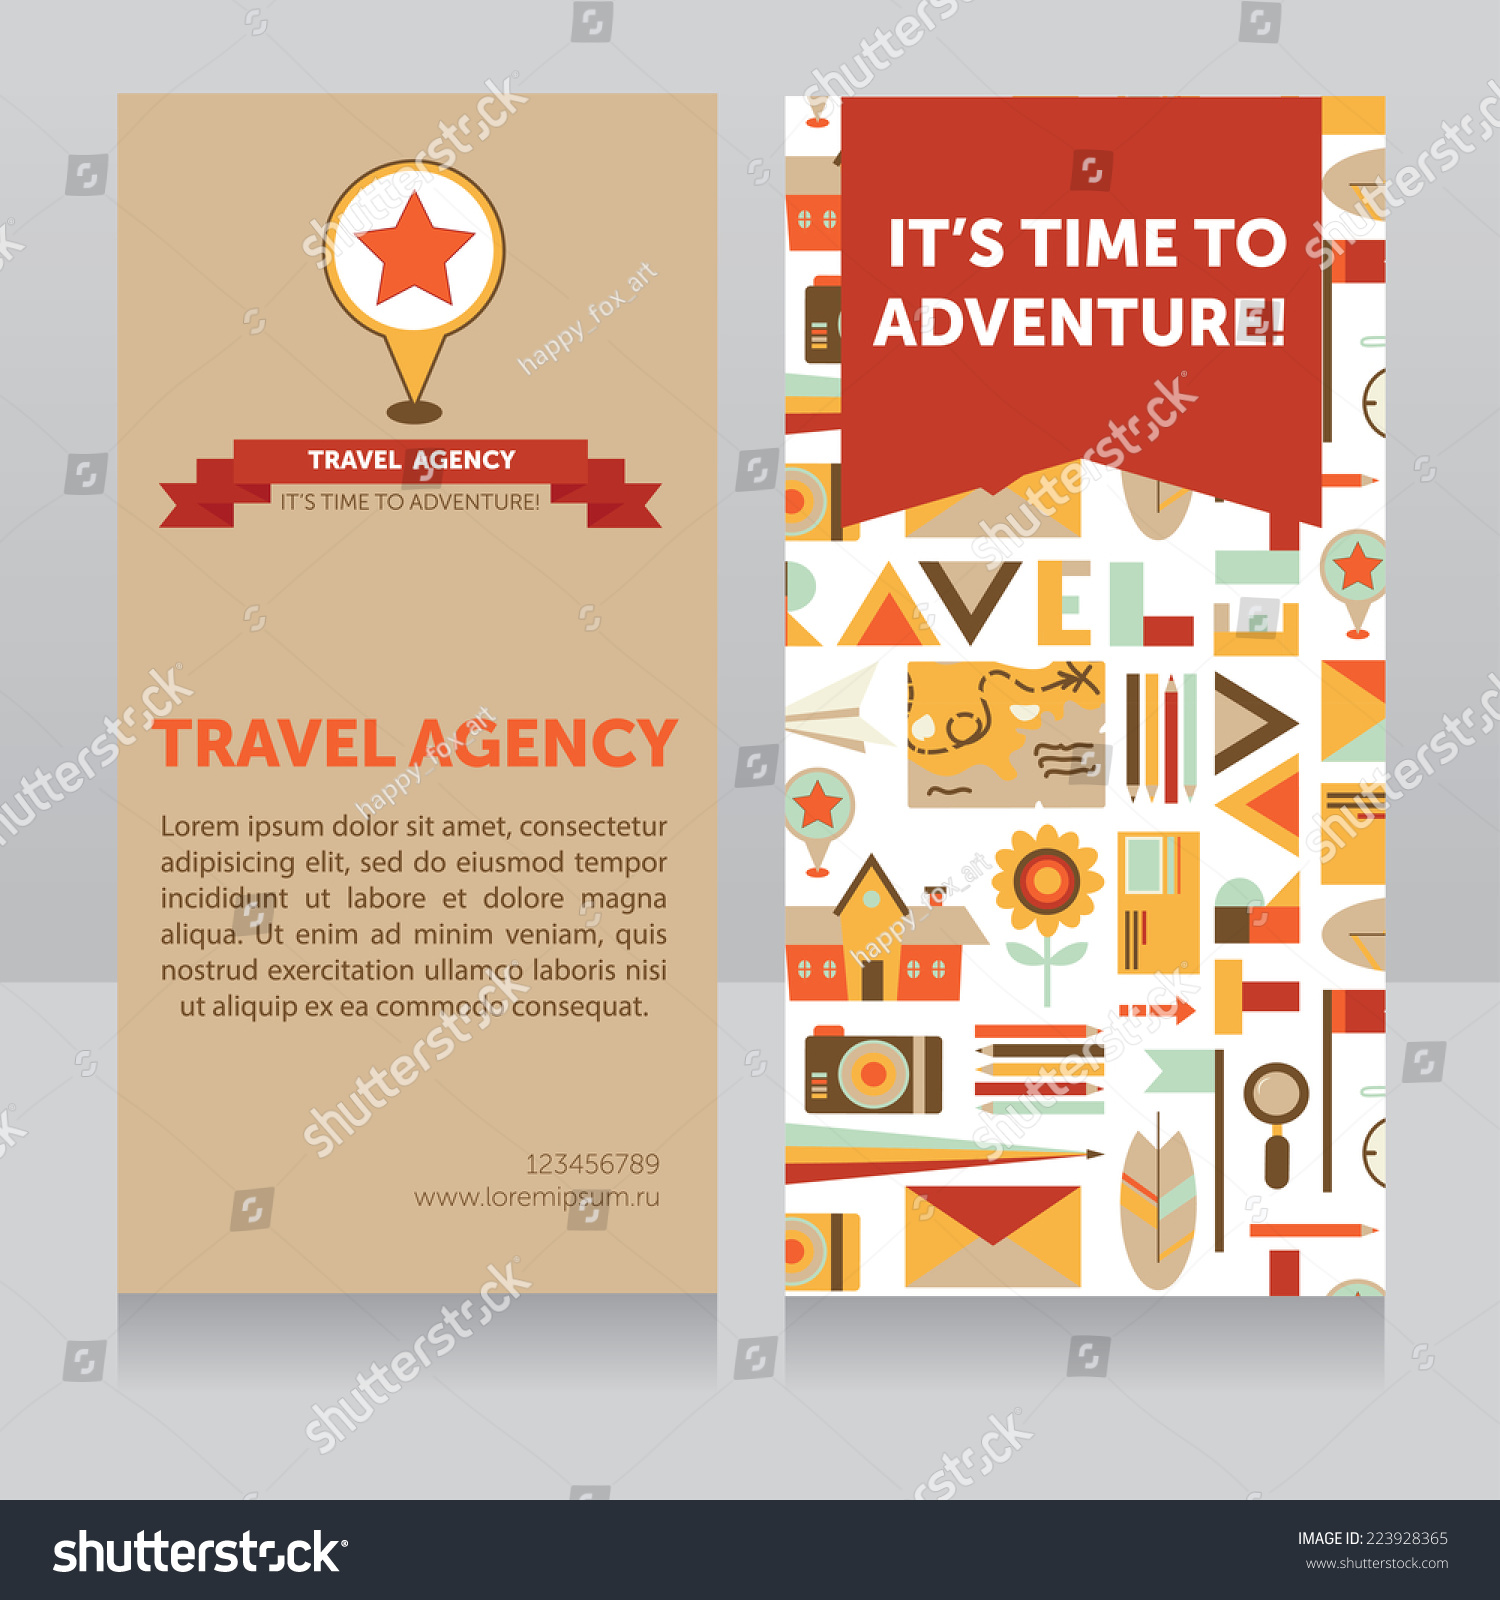 Design Template Travel Agency Business Card Stock Vector 223928365 ...